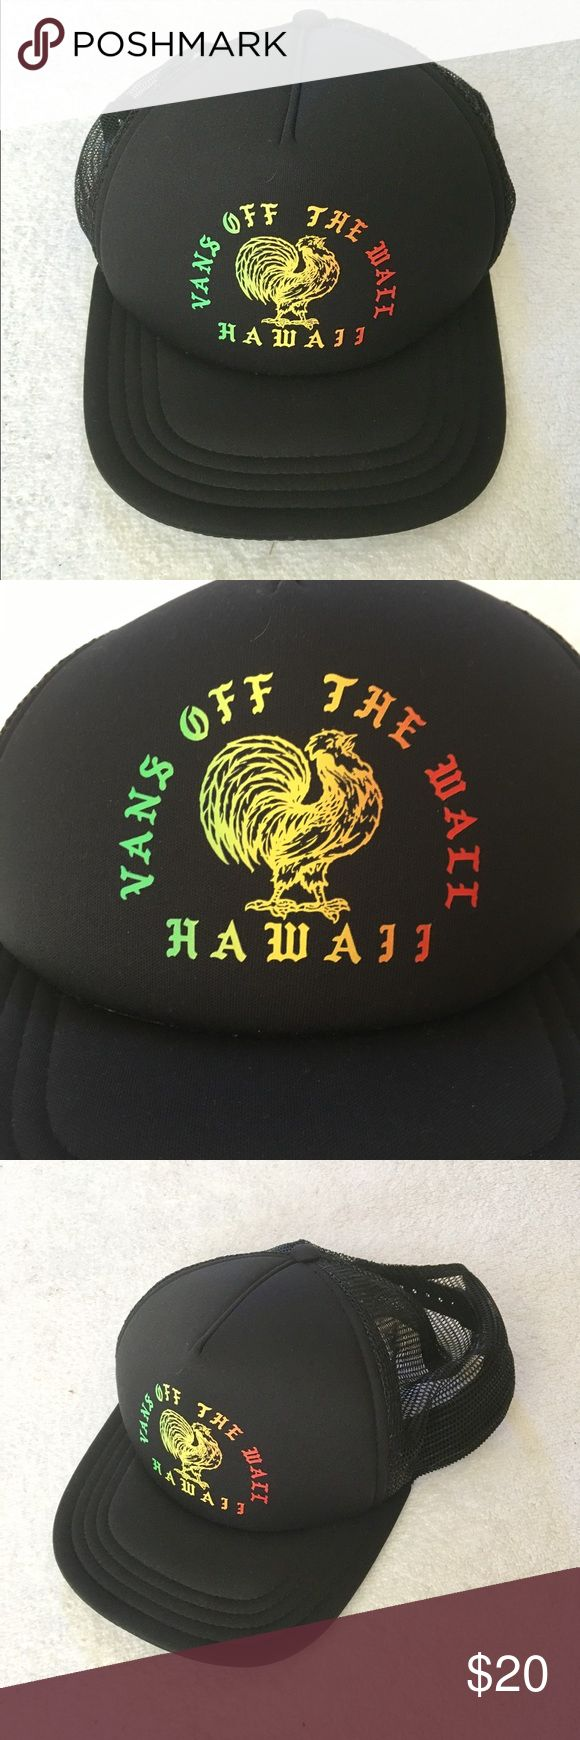 Vans Off The Wall Hawaii Adjustable Trucker Cap Vans Off The Wall Adjustable Trucker Cap  It is a snapback with mesh Hat Hawaii  Black with red yellow green print and a rooster  Good used condition.  No Rips Stains or Tears Comes from a smoke free home Vans Accessories Hats